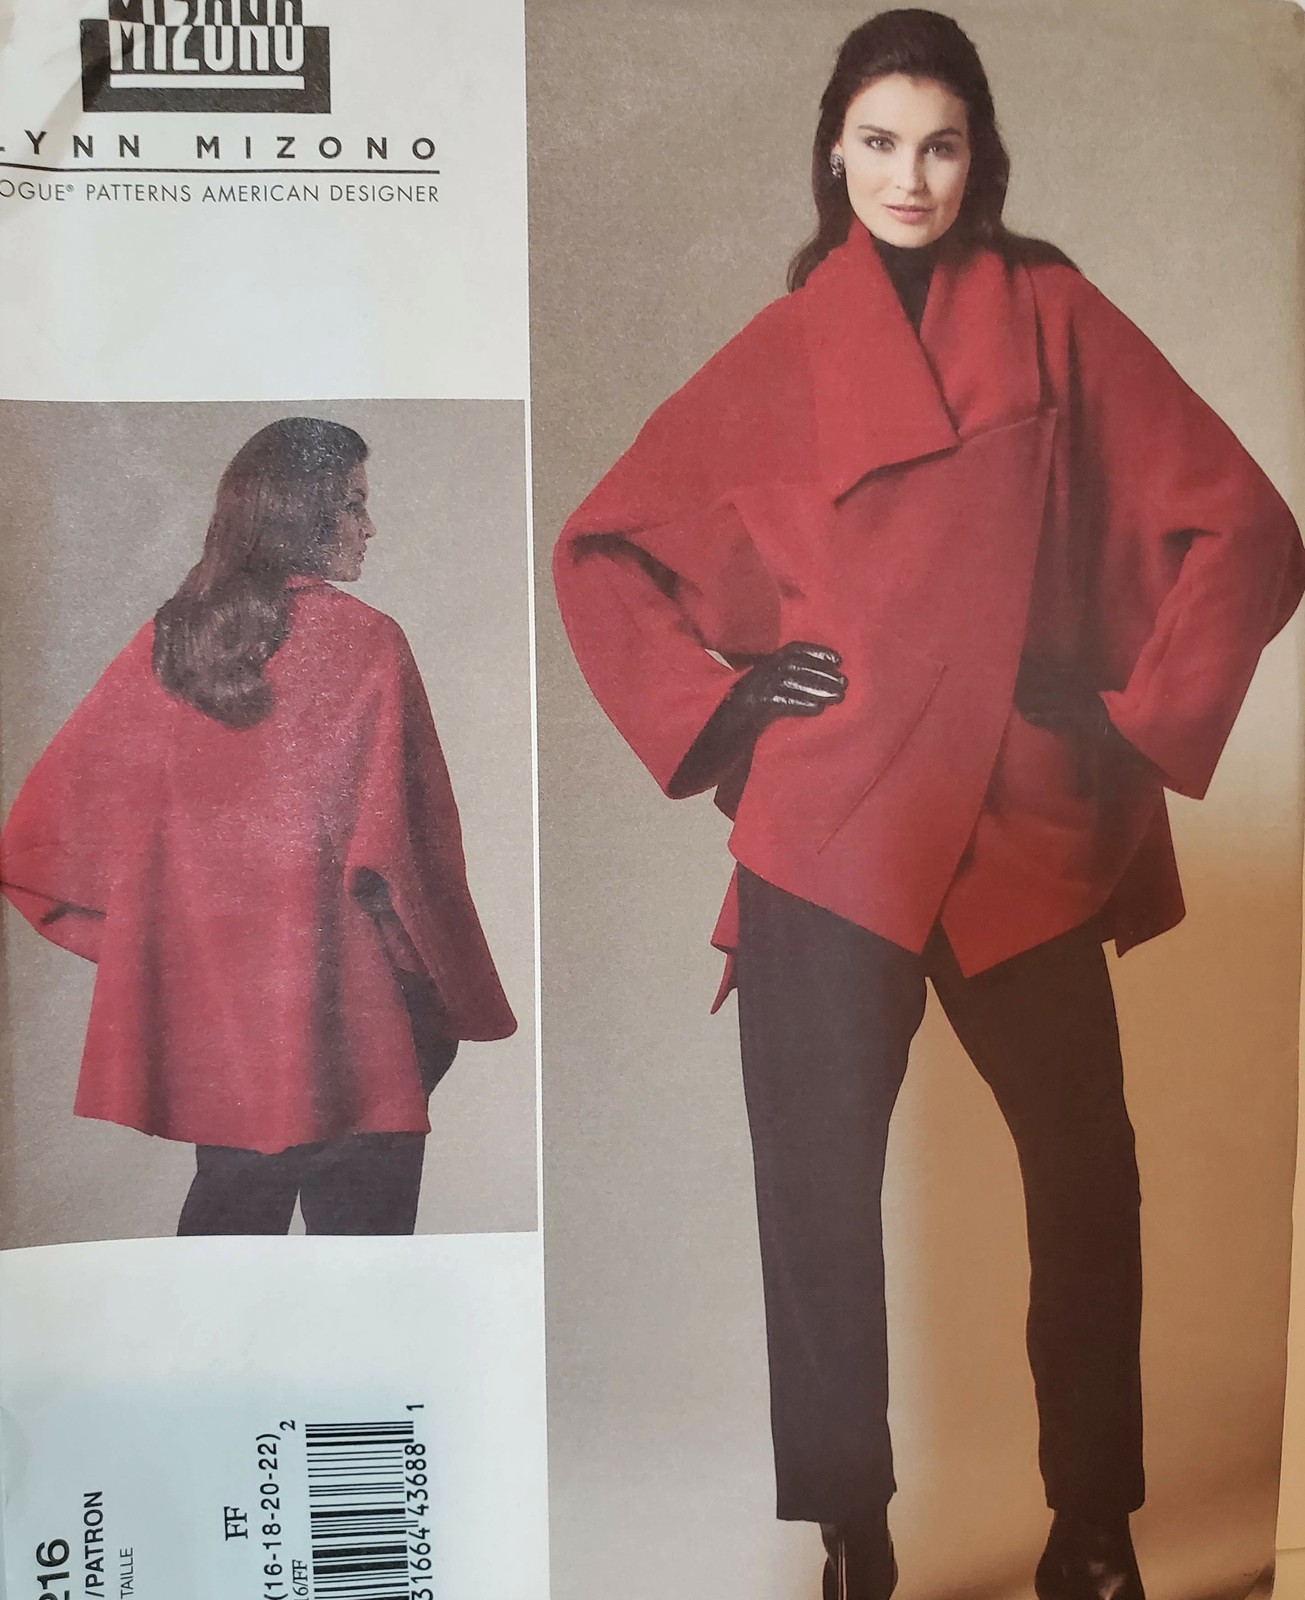 Primary image for Vogue Pattern 1216 Lynn Mizono Jacket and Pants Sewing Pattern